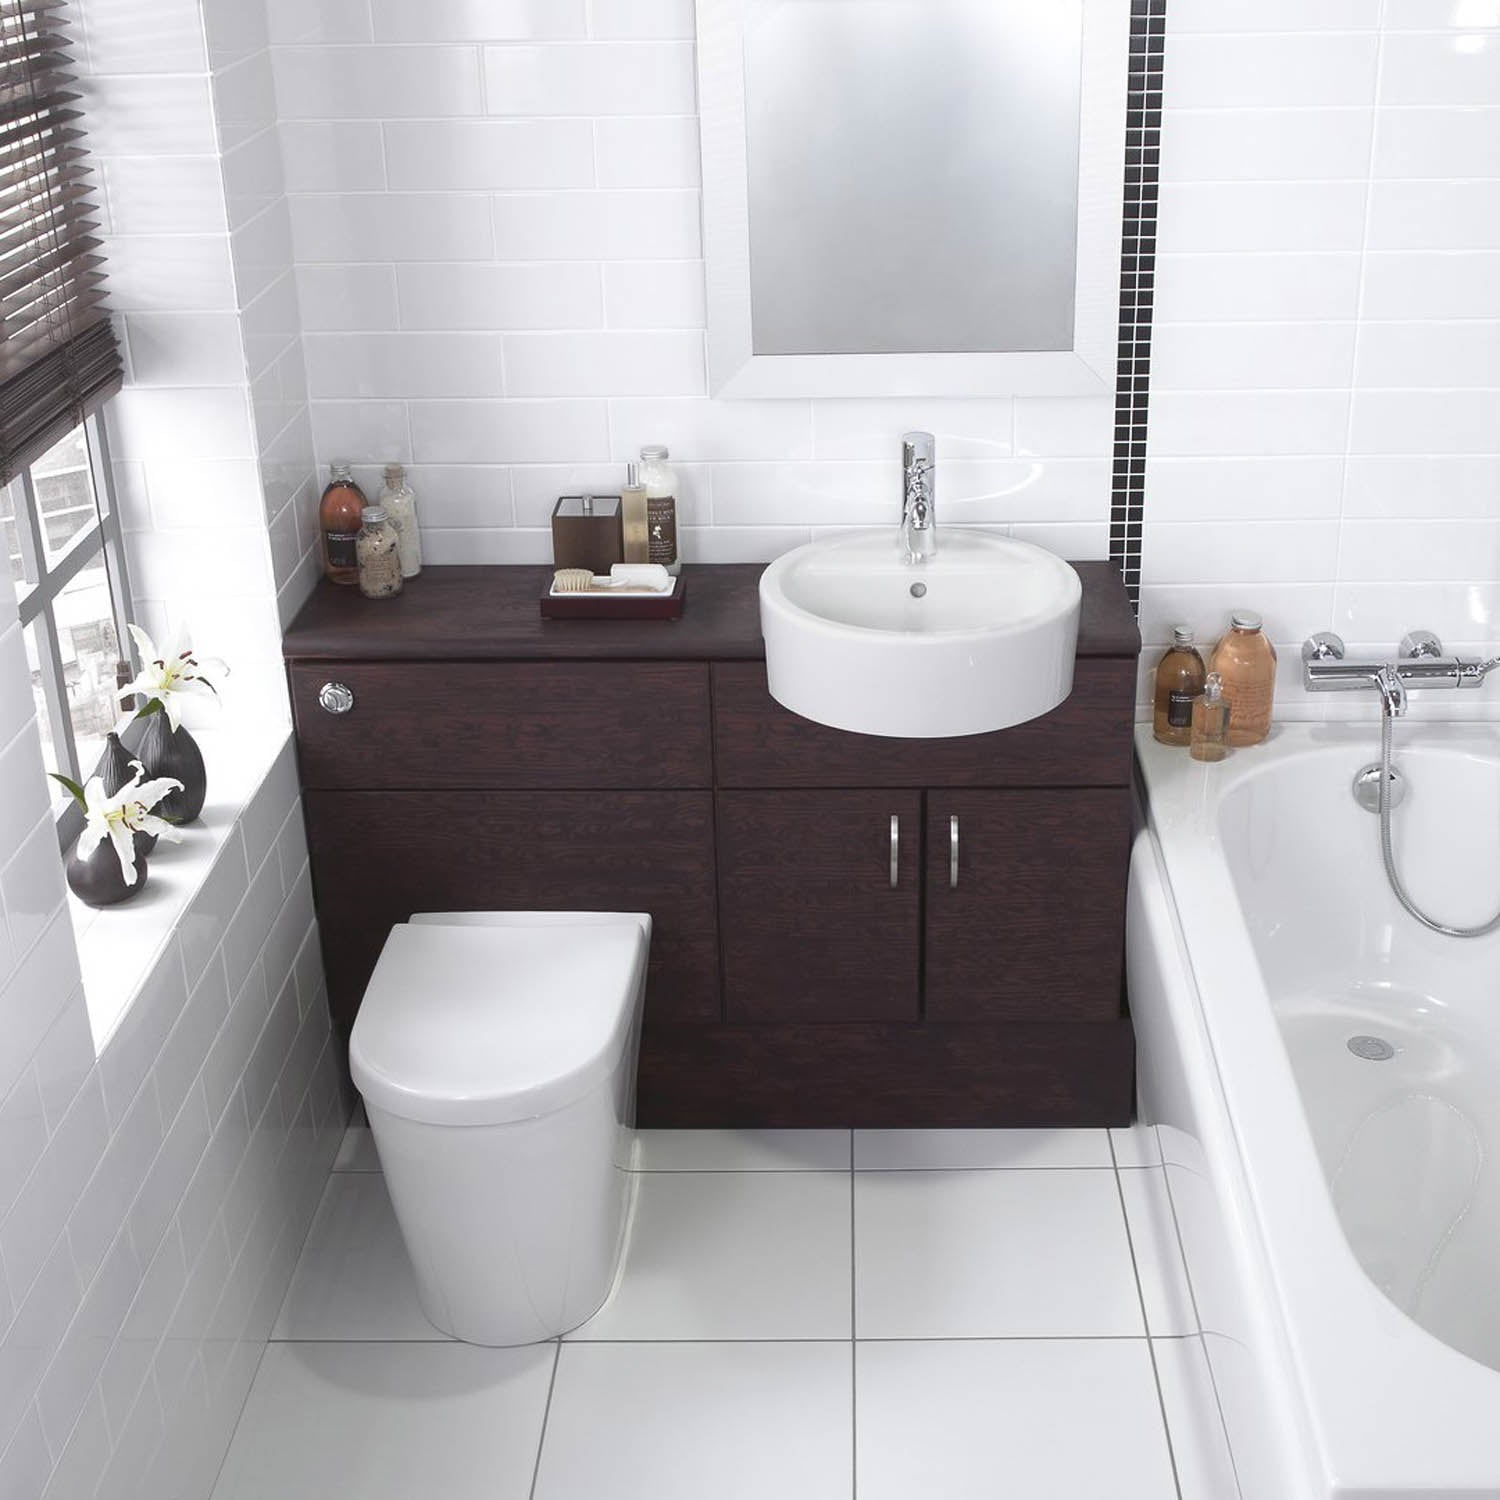 750mm Matrix Long Projection Back to Wall Toilet with a seat and cover lifestyle image